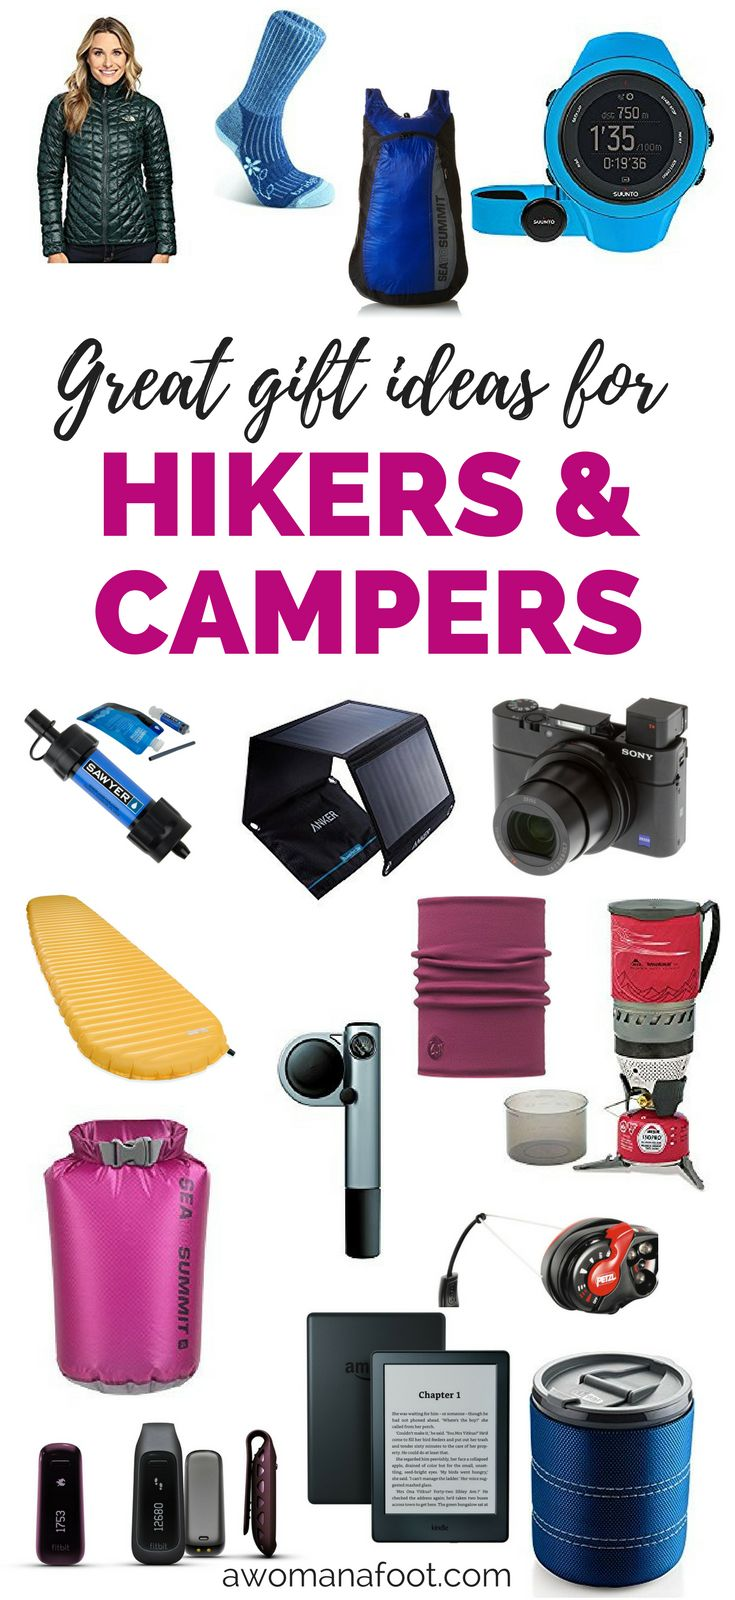 Great Gift Ideas for Hikers & Campers - perfect for every outdoorsy traveler! awomanafoot.com via @topupyourtrip